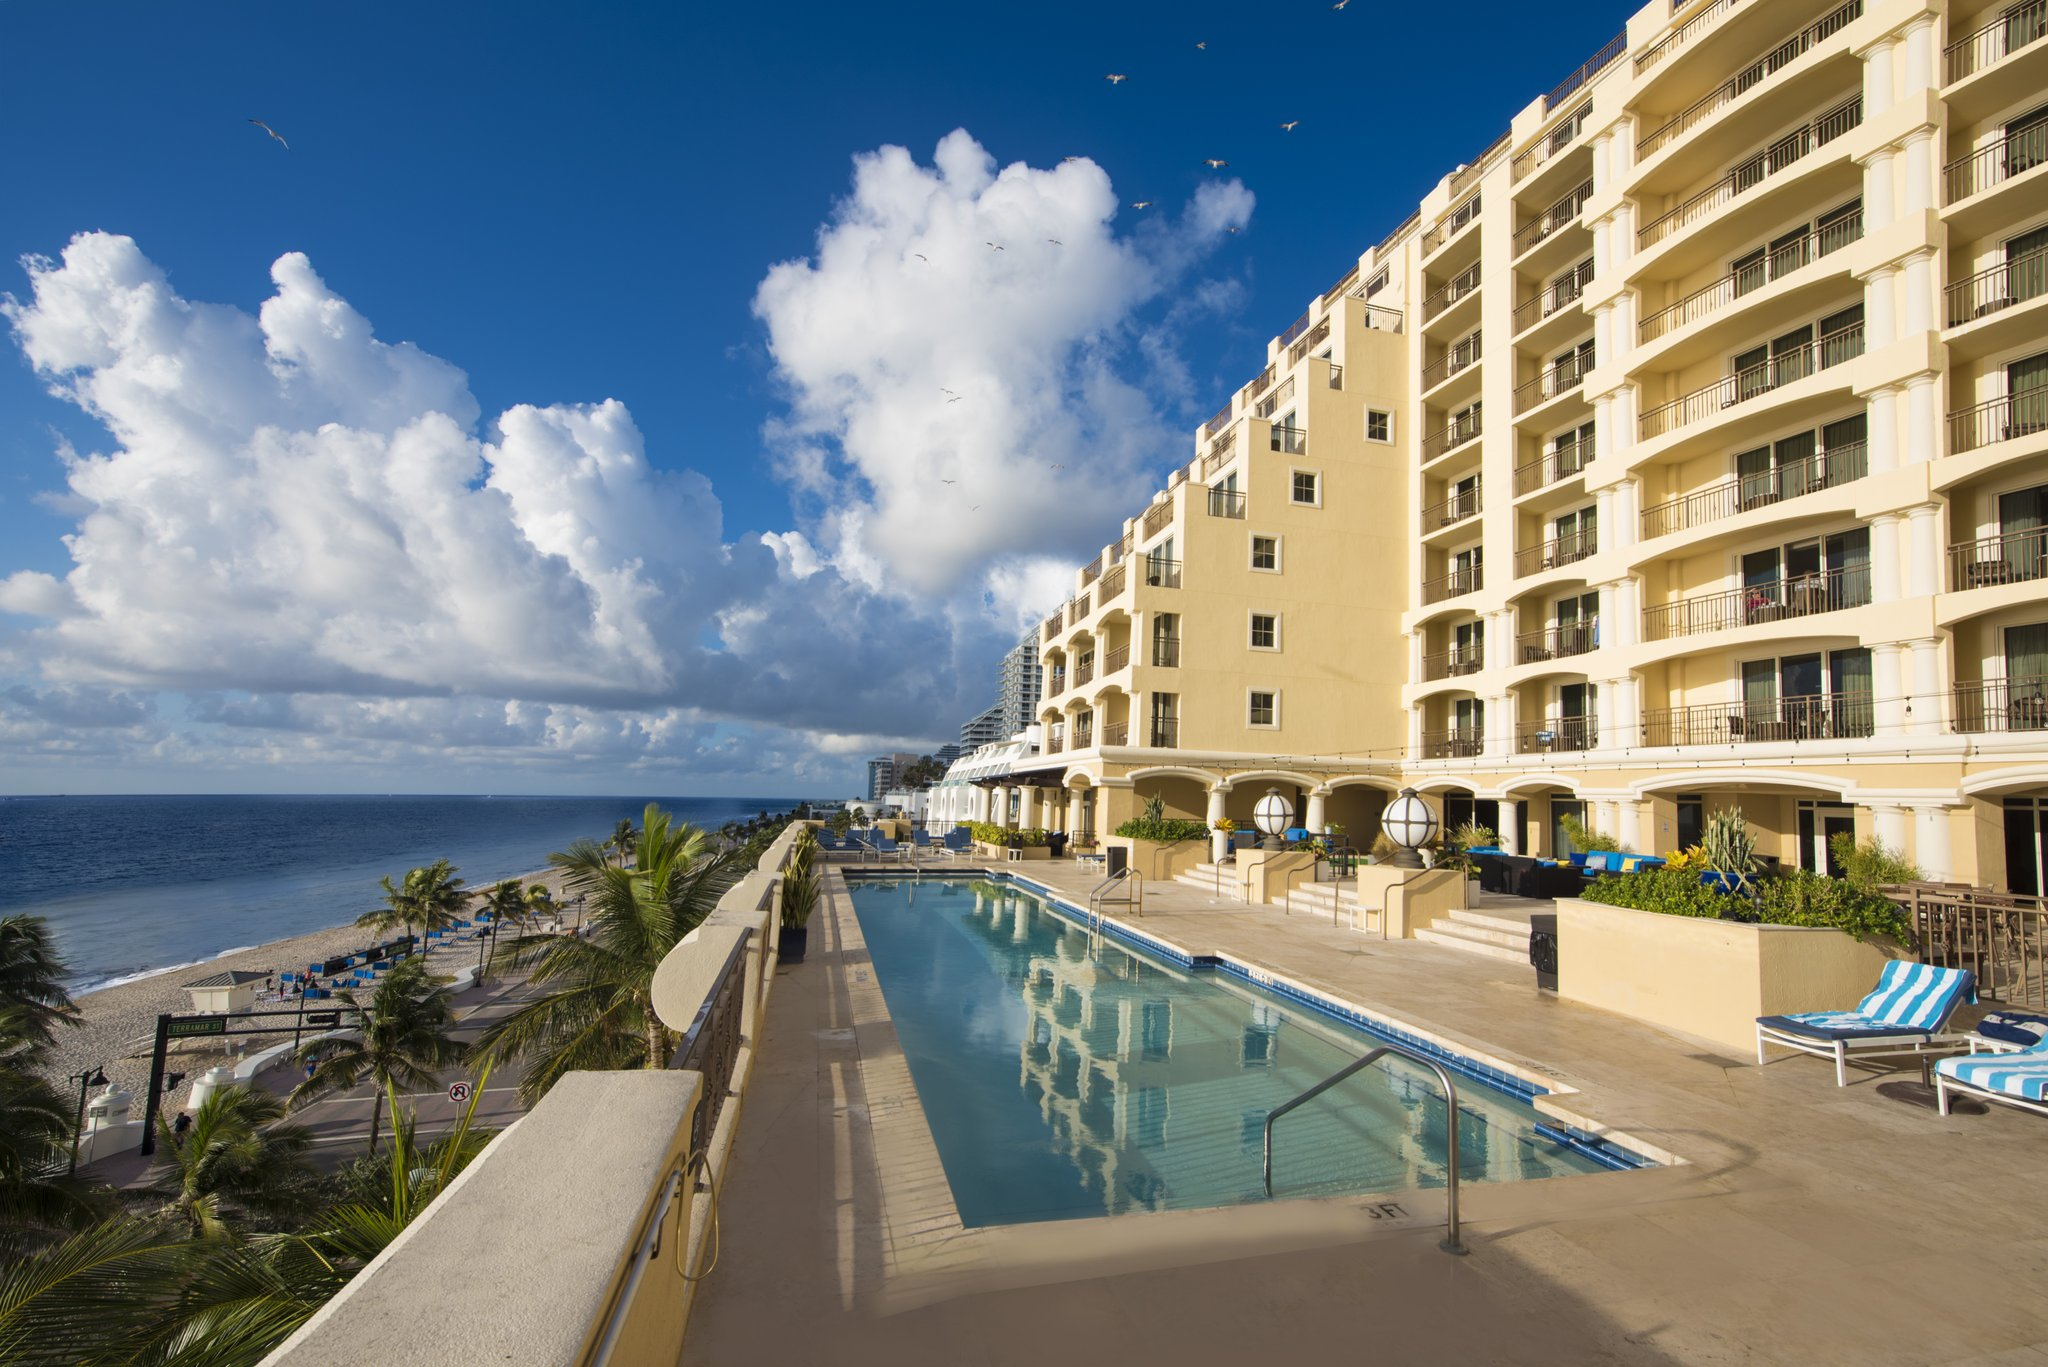 https://www.hotelsbyday.com/_data/default-hotel_image/2/11233/hotel-pool-deck-and-pool-s.jpg